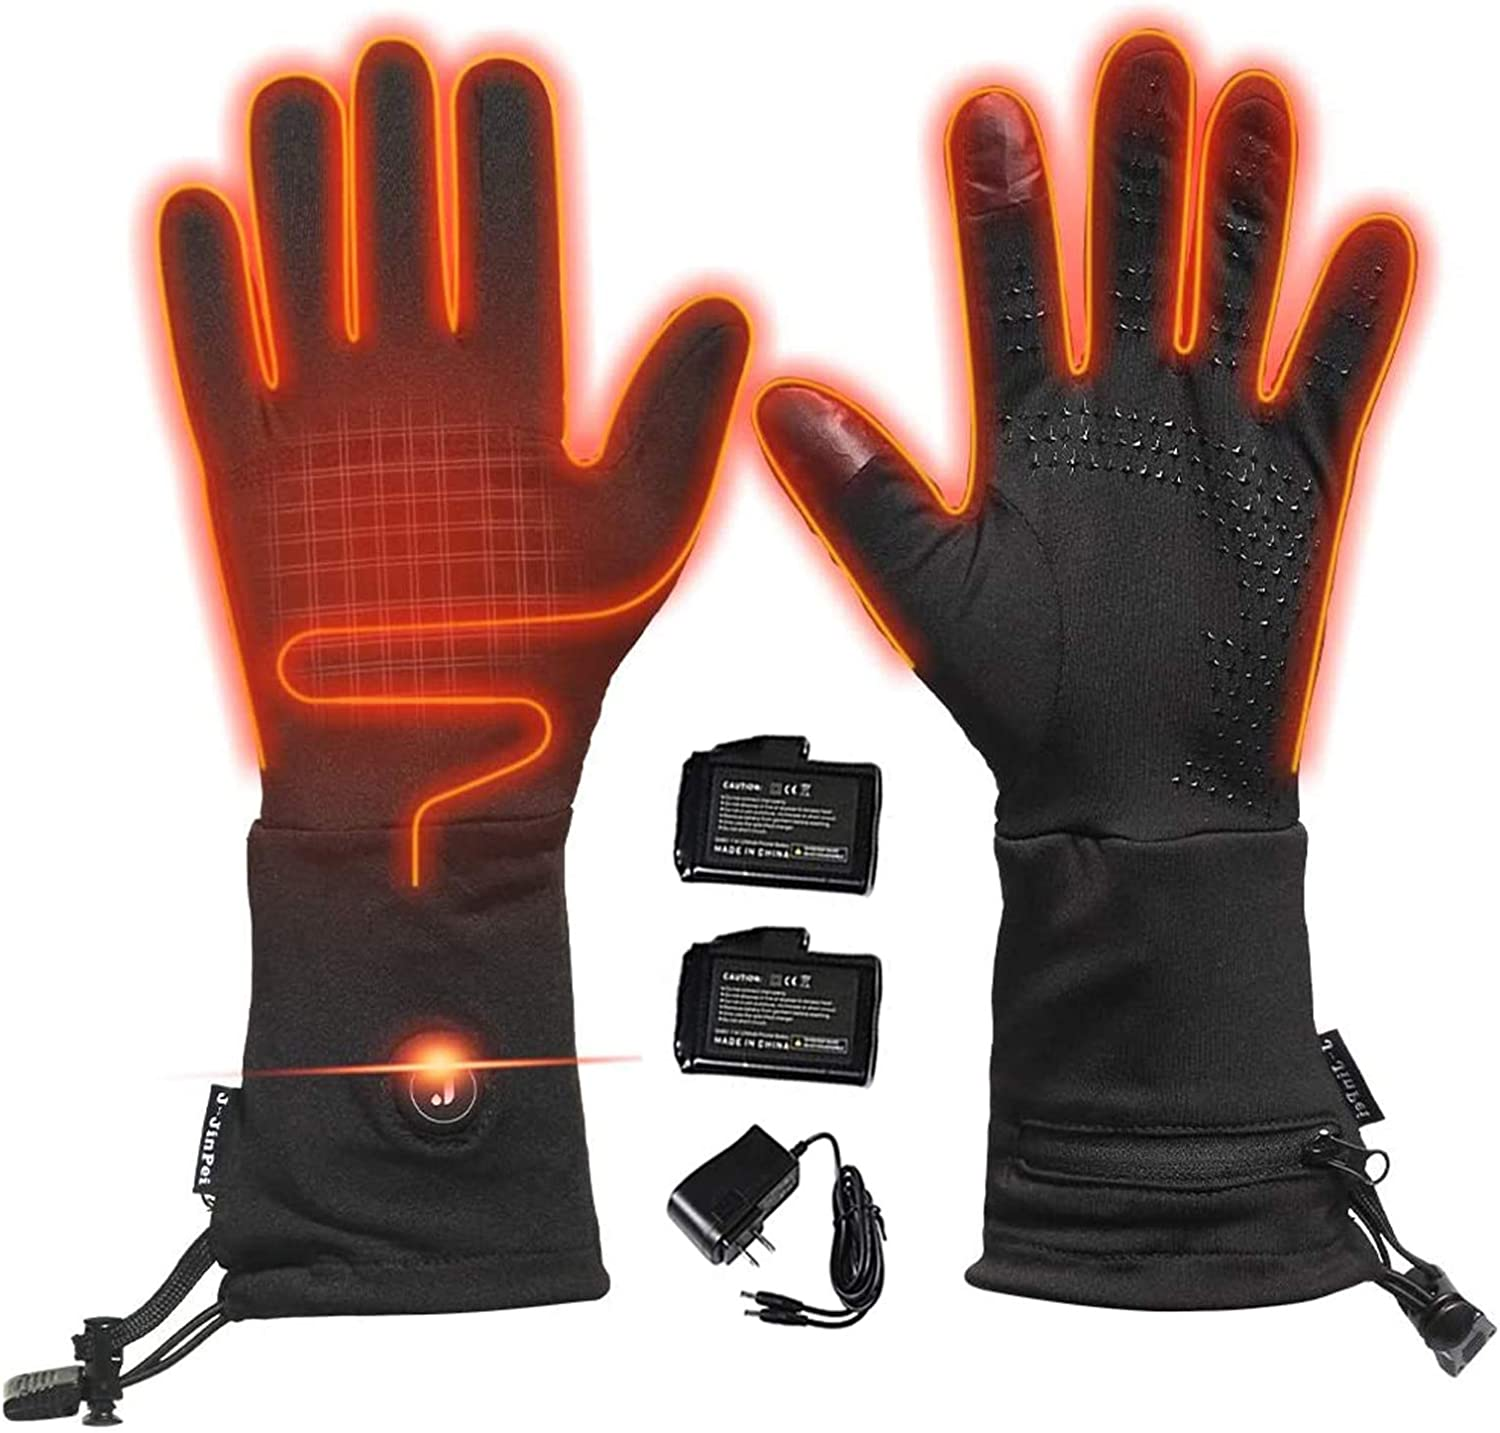 Heated Glove Liners for Men Women,Electric Arthritis Mittens Motorcycle Ski Hiking Hand Warmer